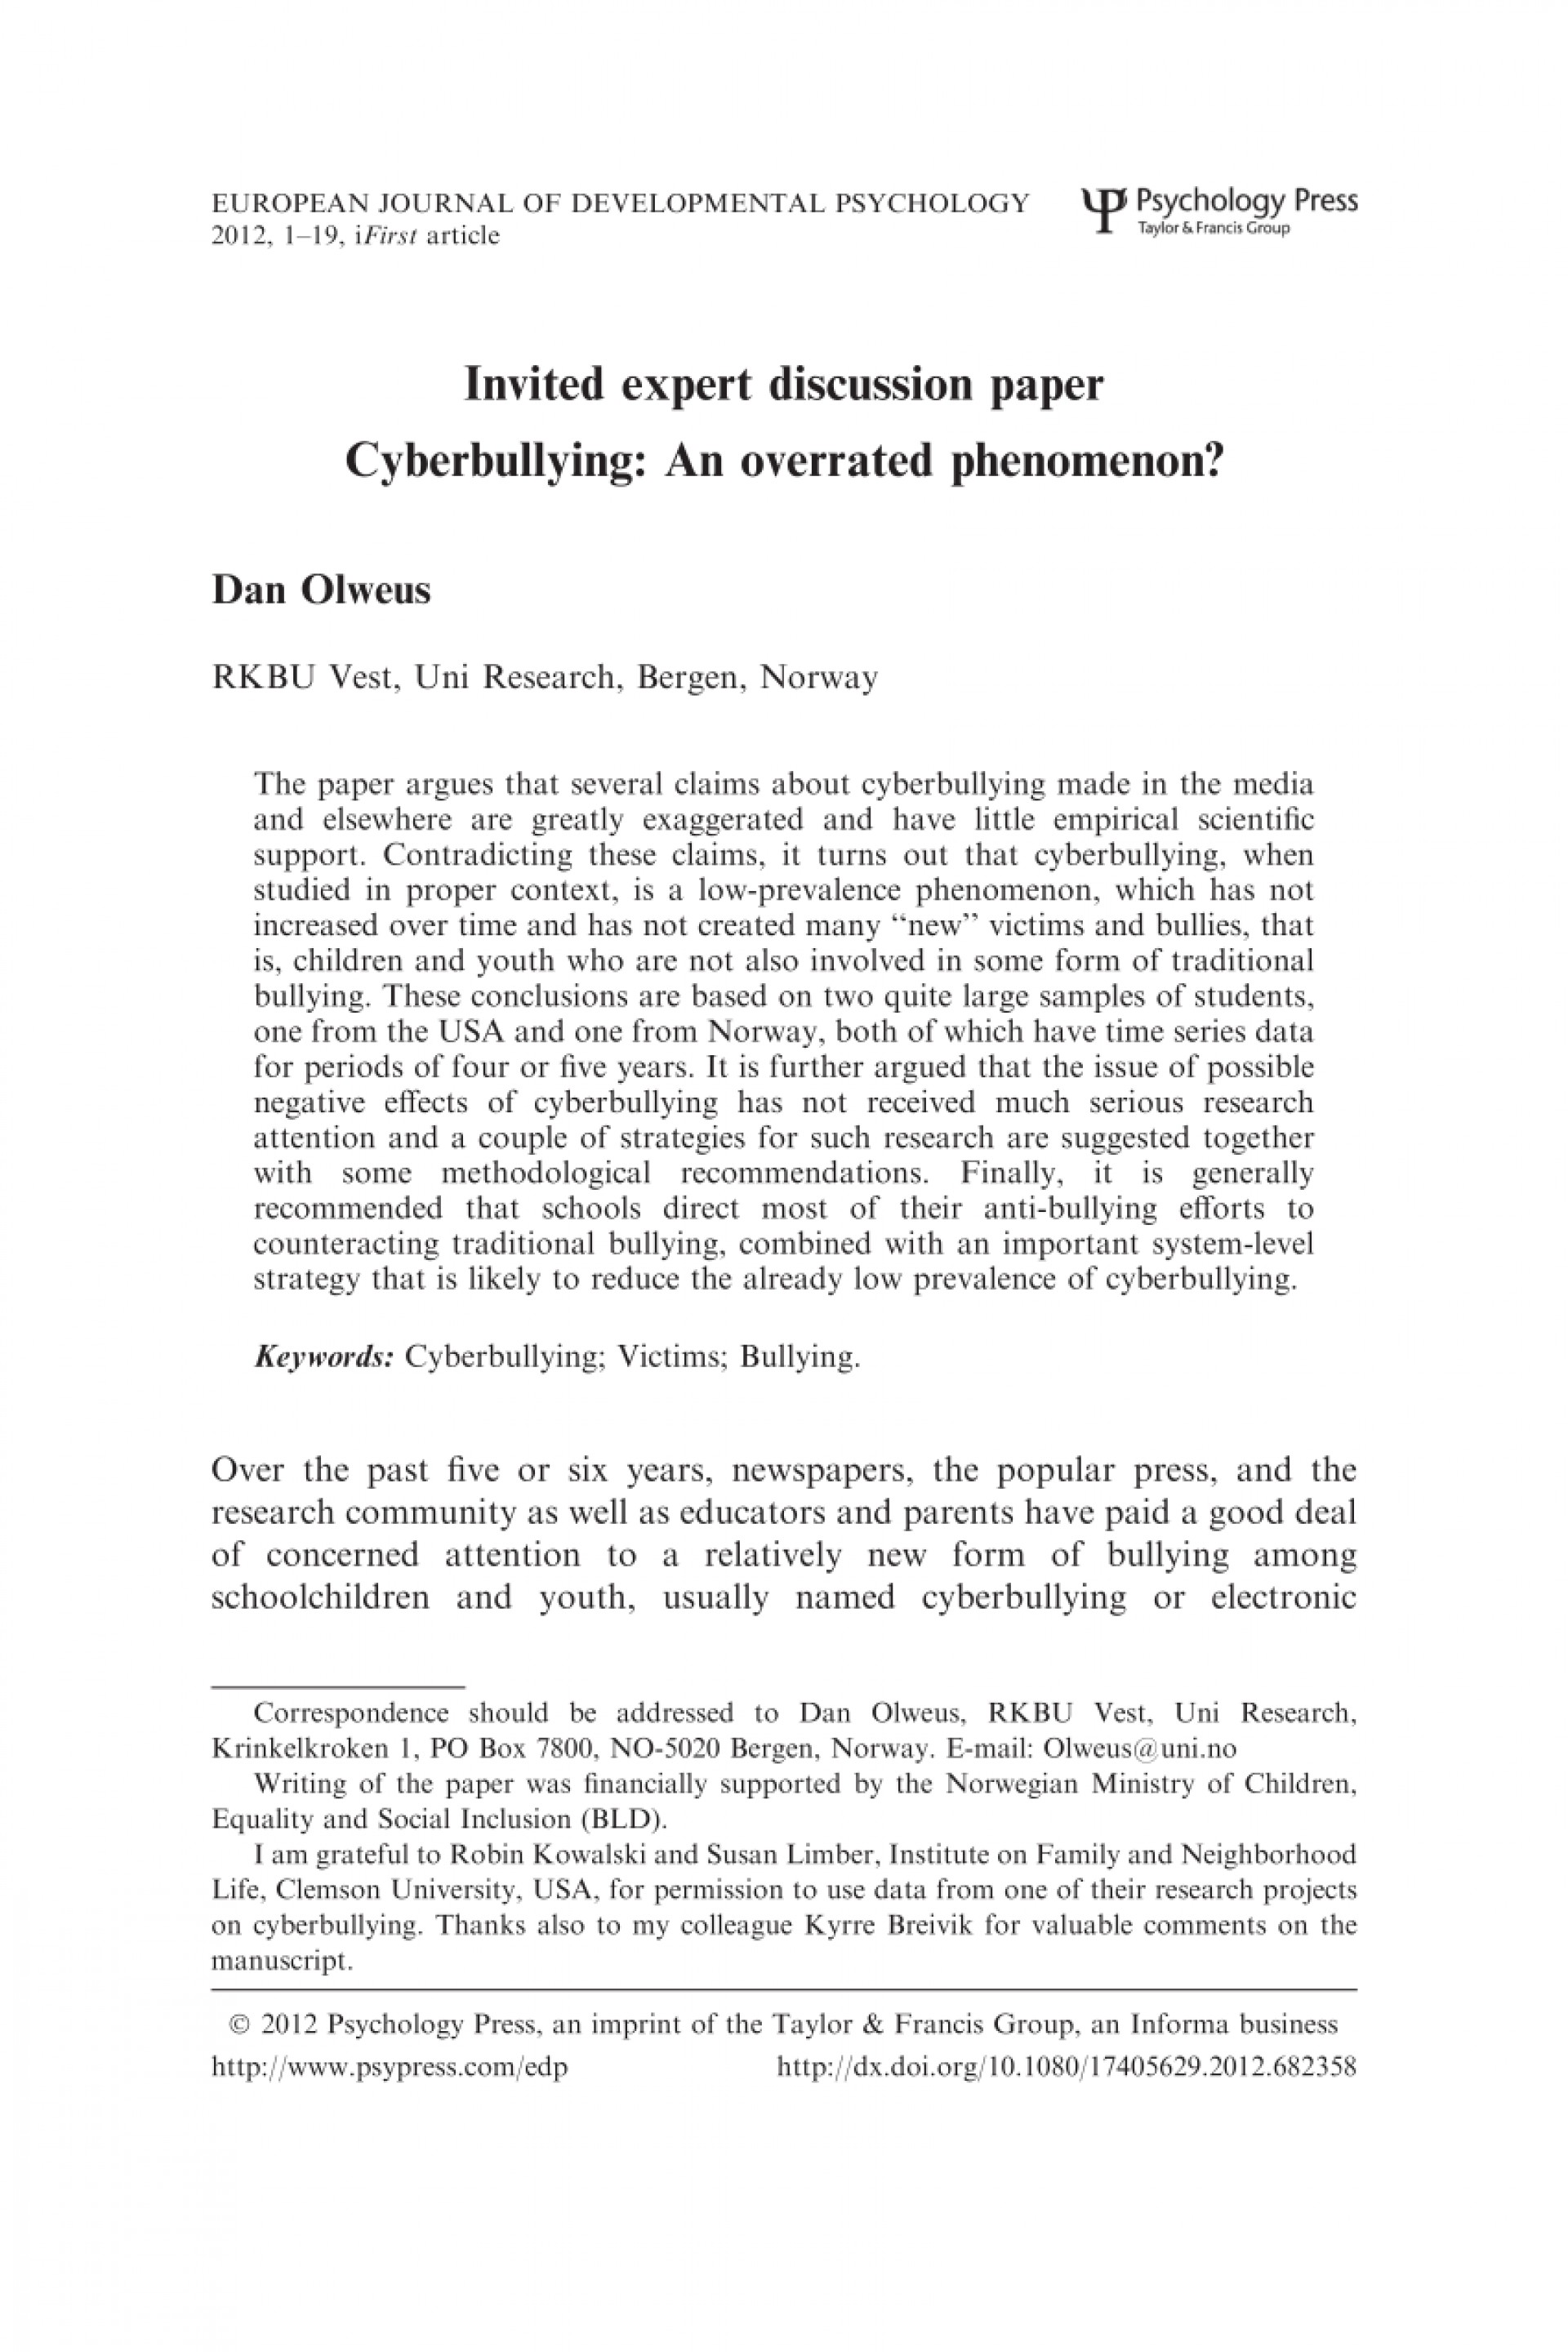 004 Largepreview Research Paper Cyberbullying Chapter Excellent 3 1920